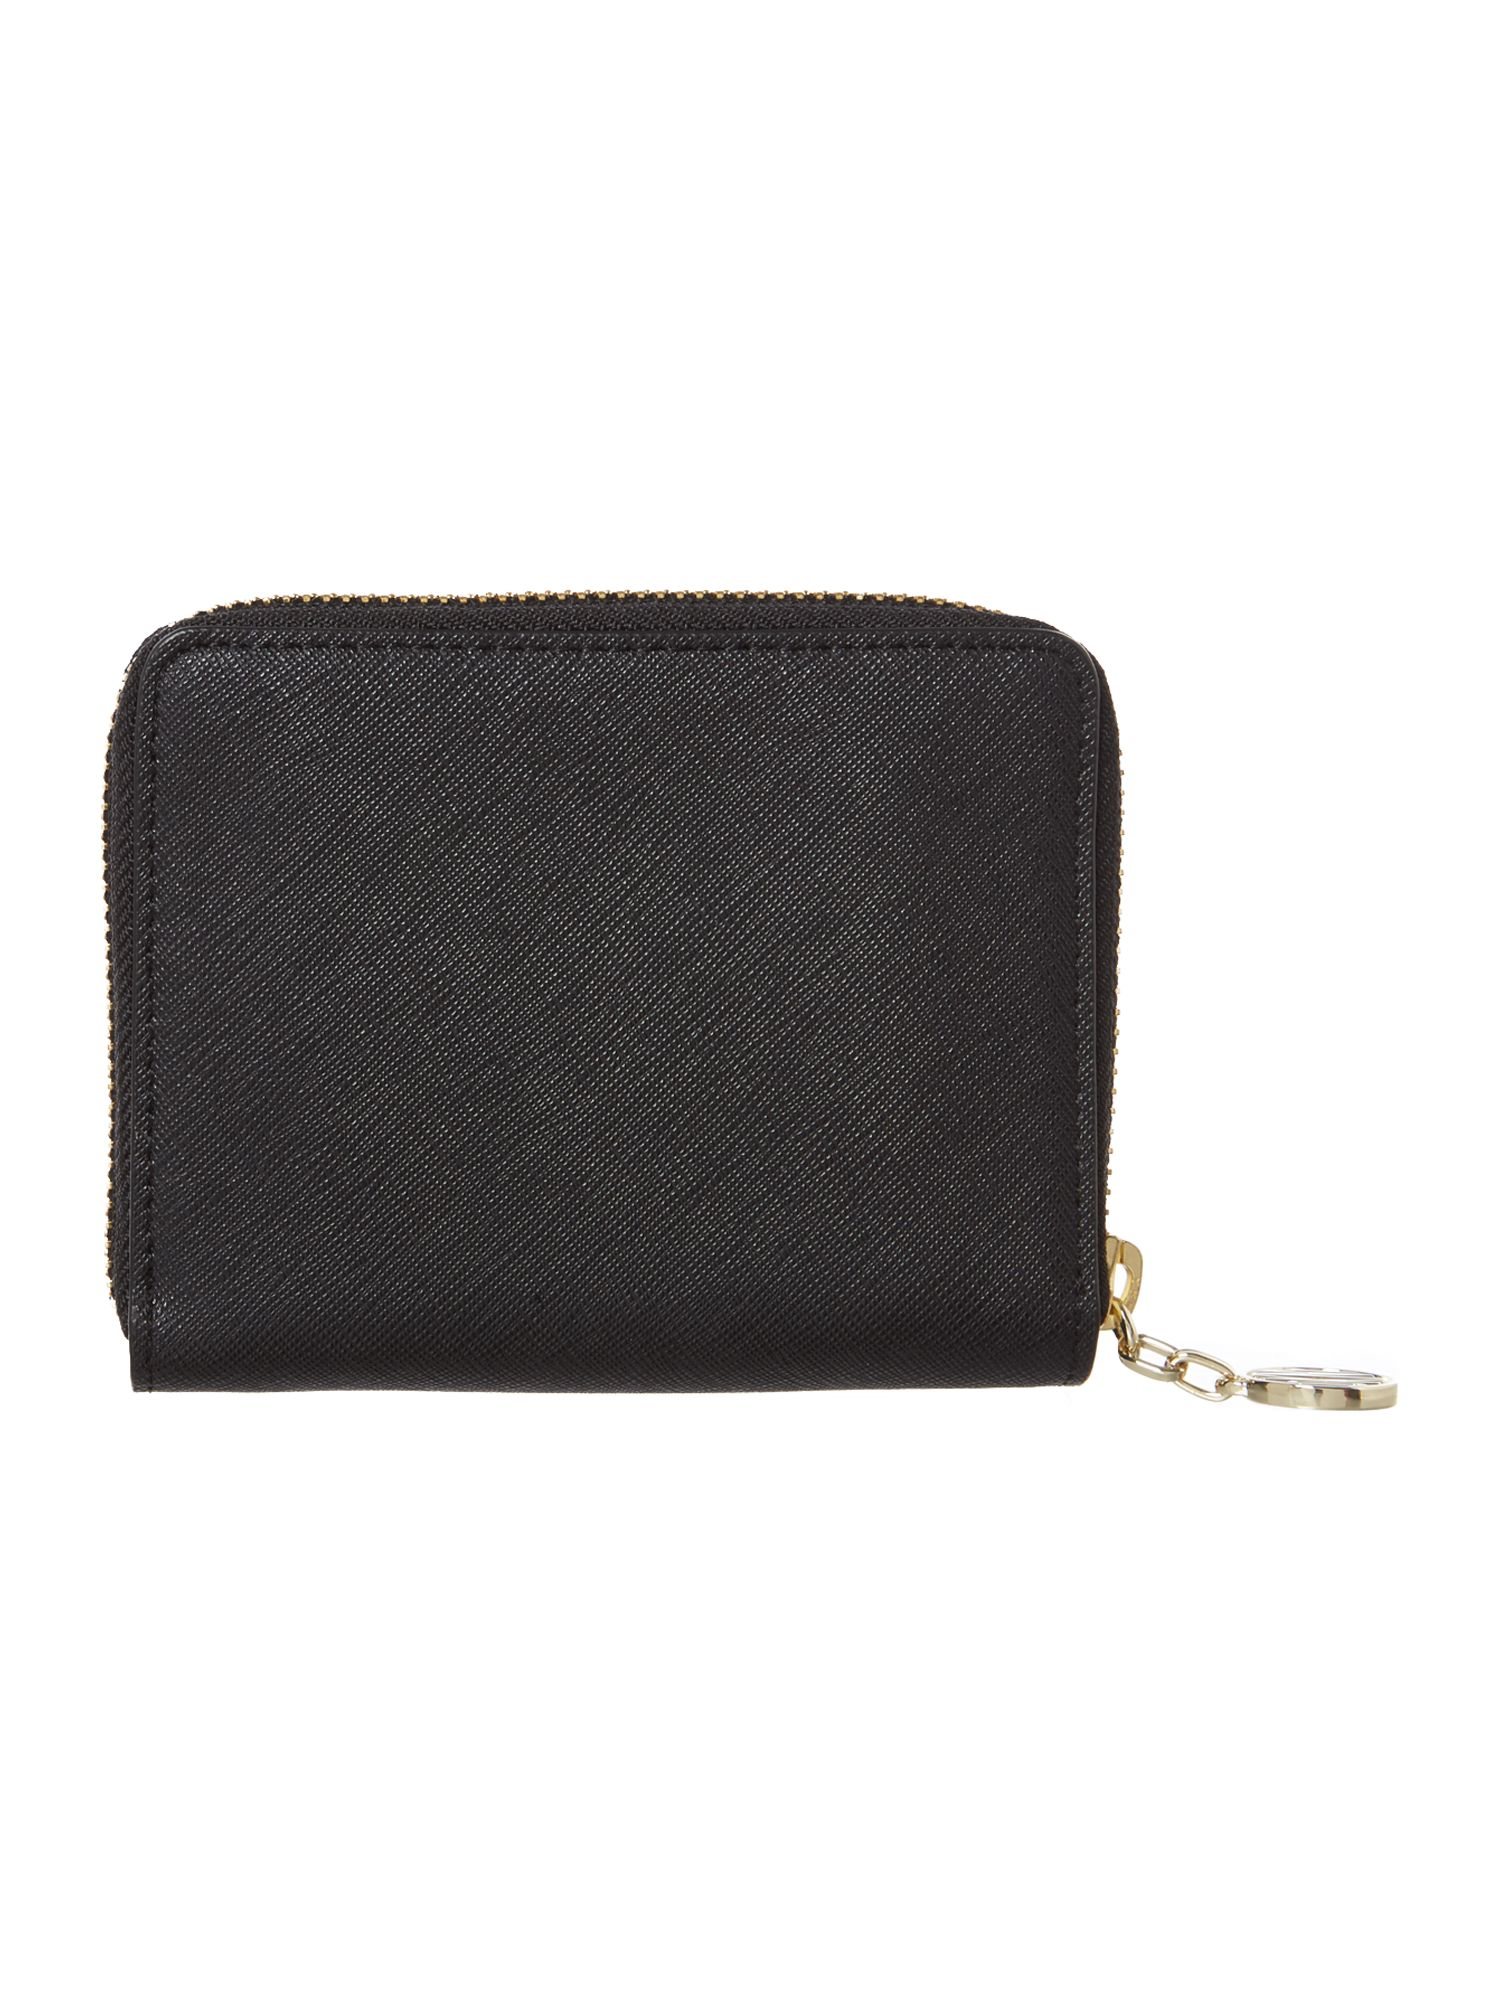 Saffiano black small zip around purse